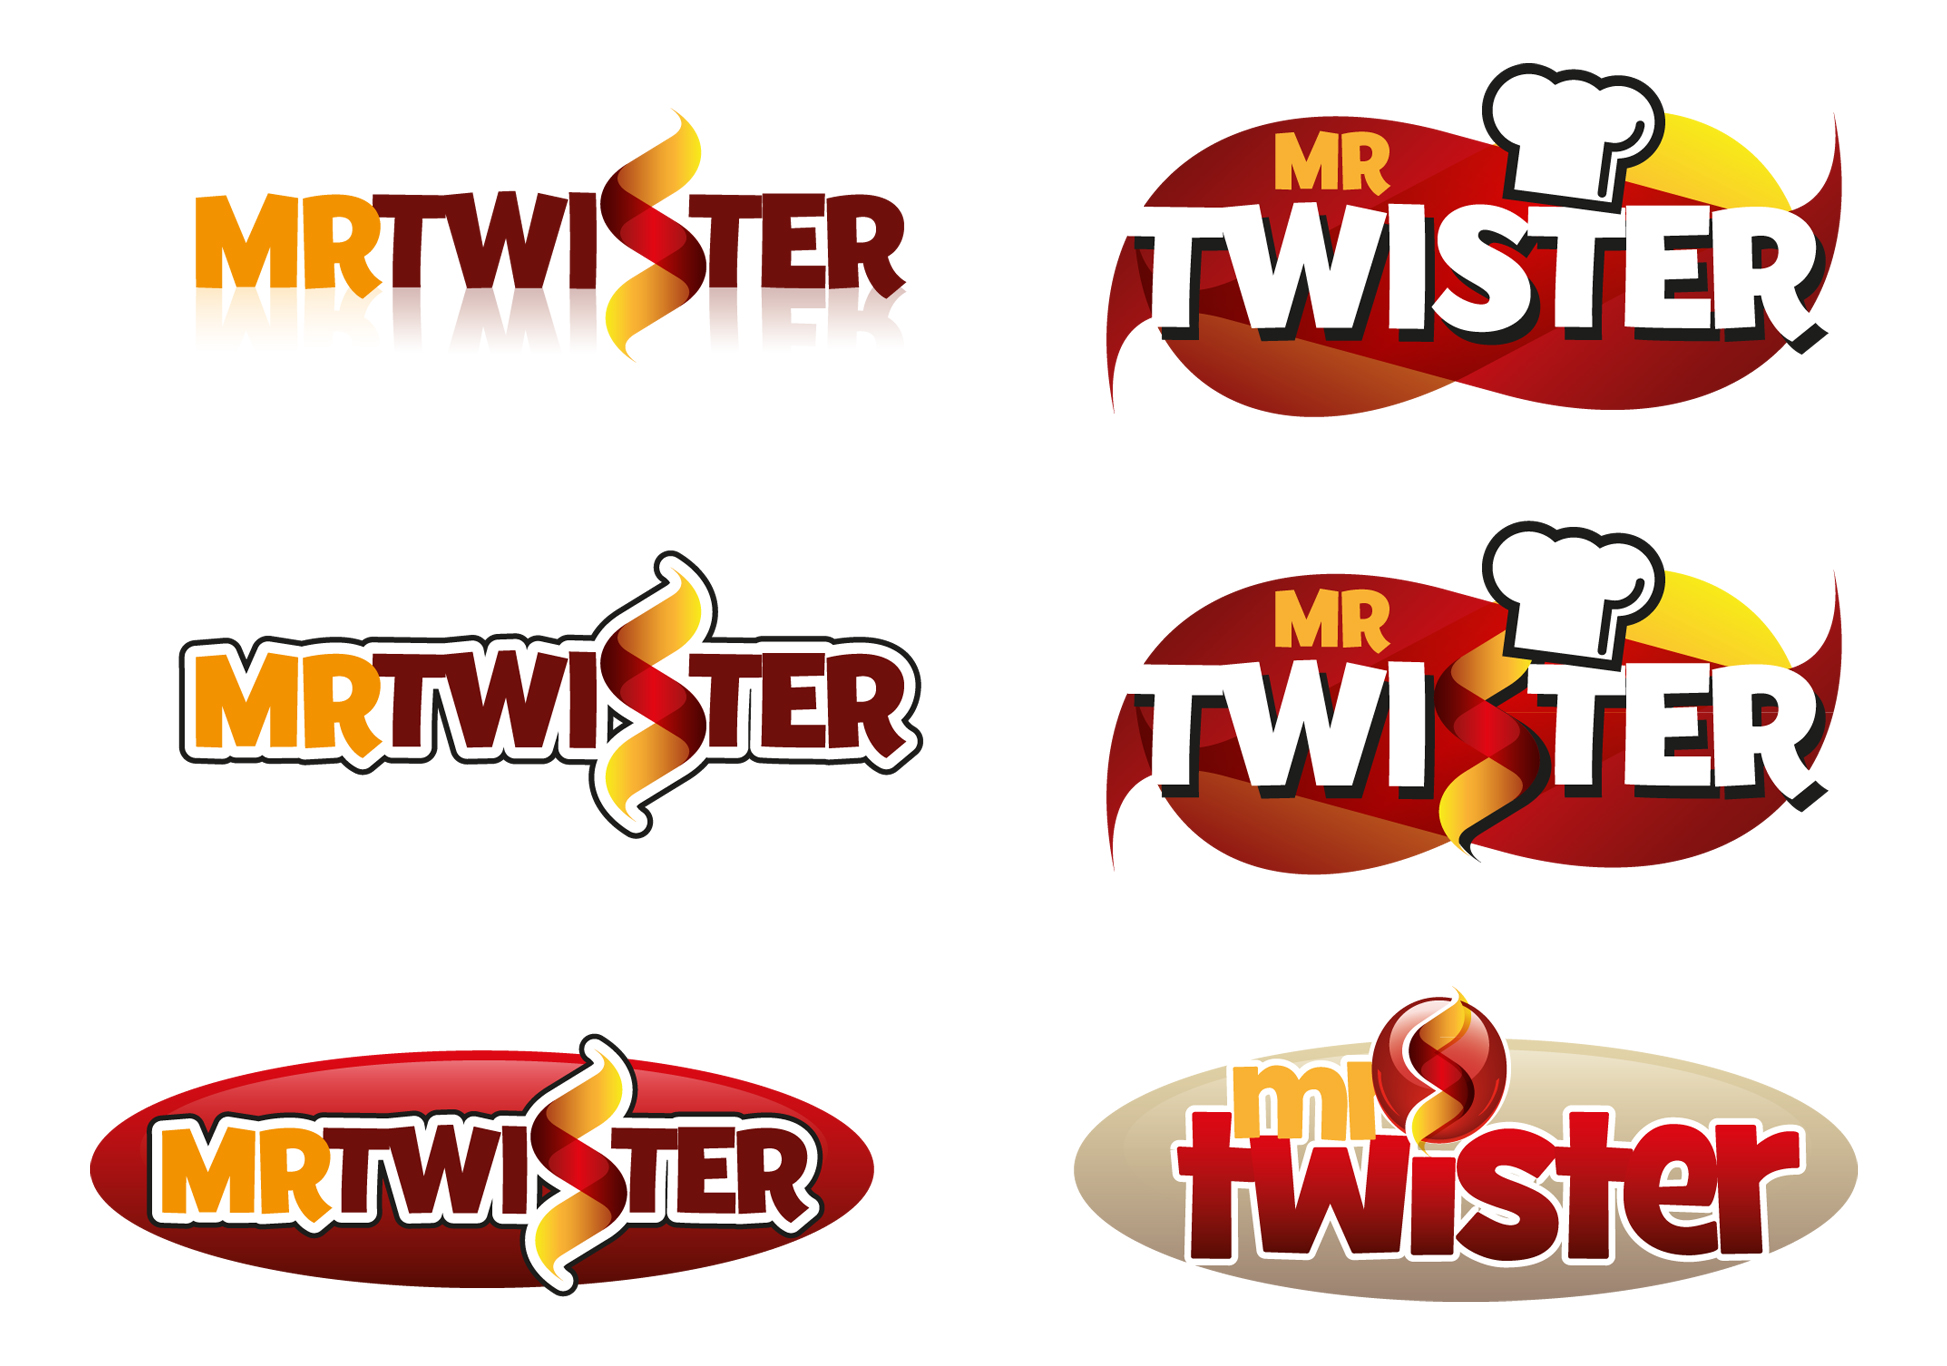 6 Twister Graphic Design Images